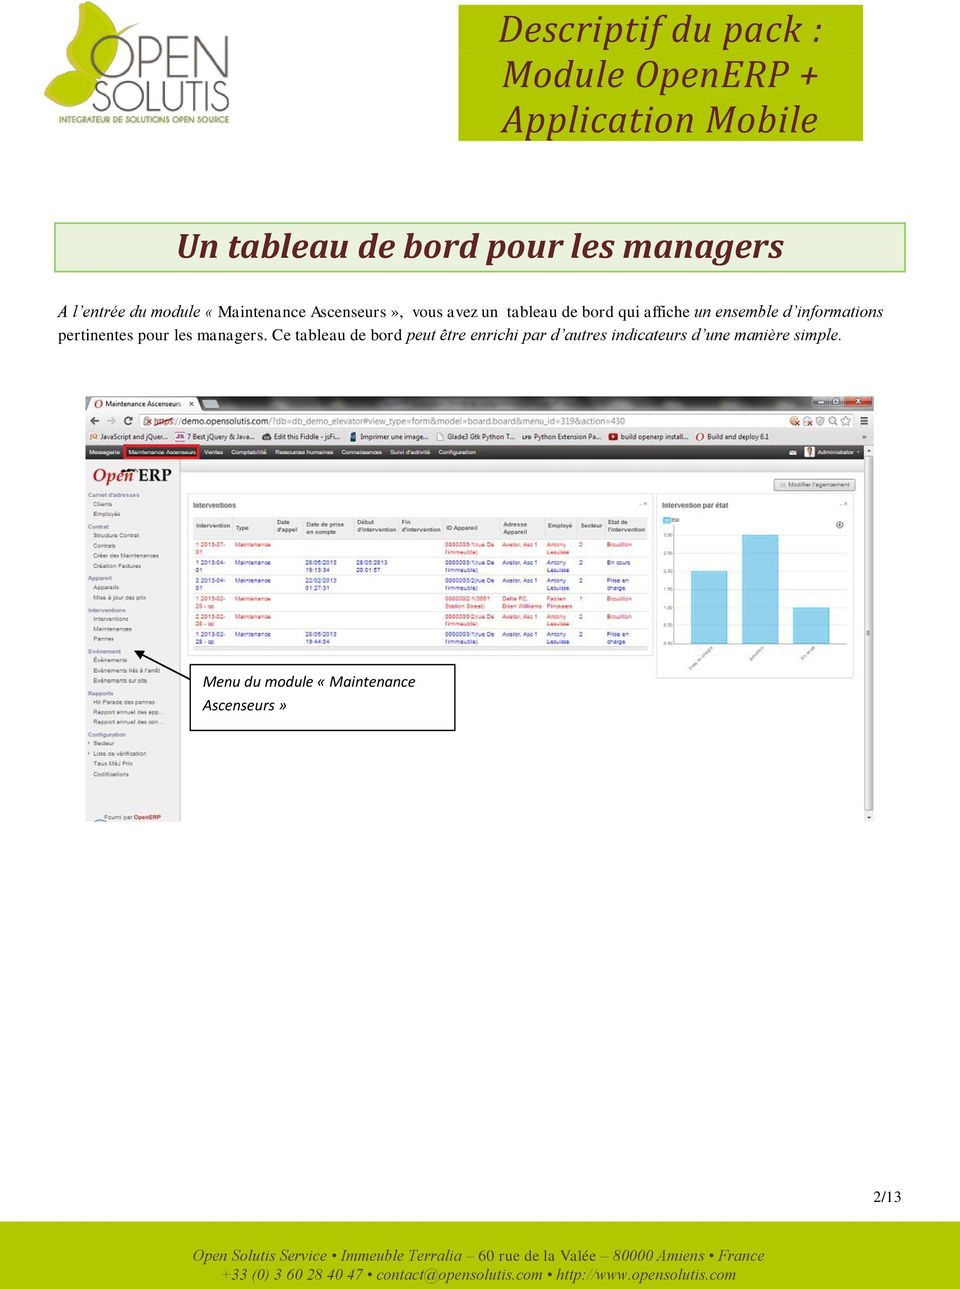 informations pertinentes pour les managers.